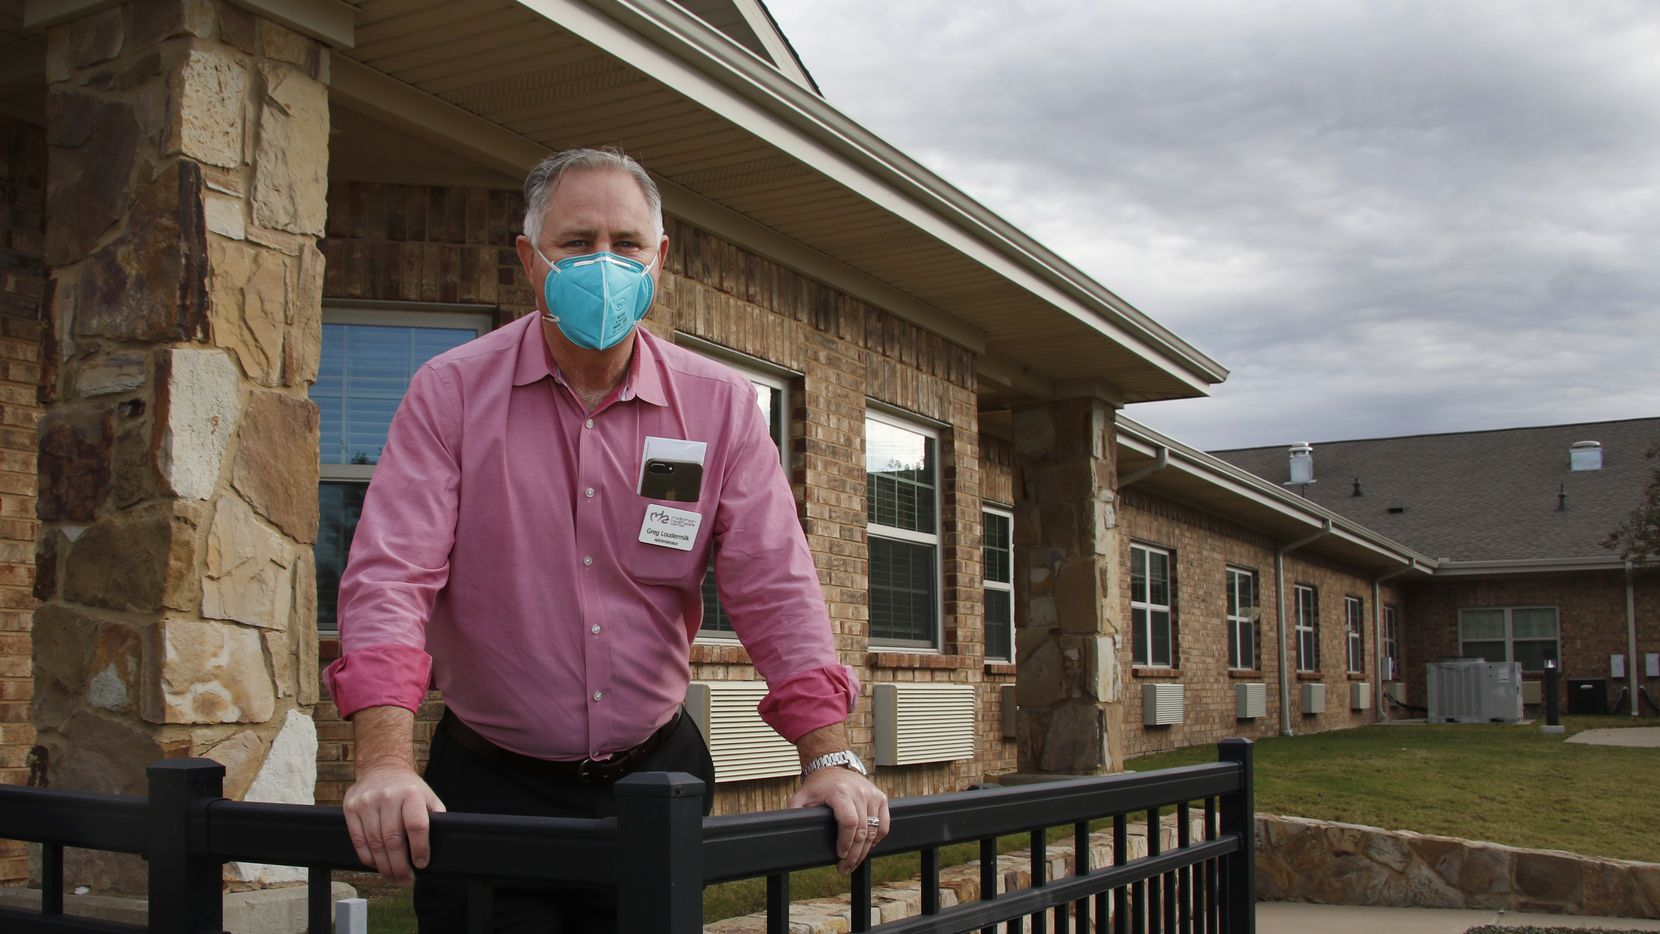 Greg Loudermilk faces challenges in keeping his staff and residents safe from COVID-19 at the Midlothian Healthcare Center in Ellis County.